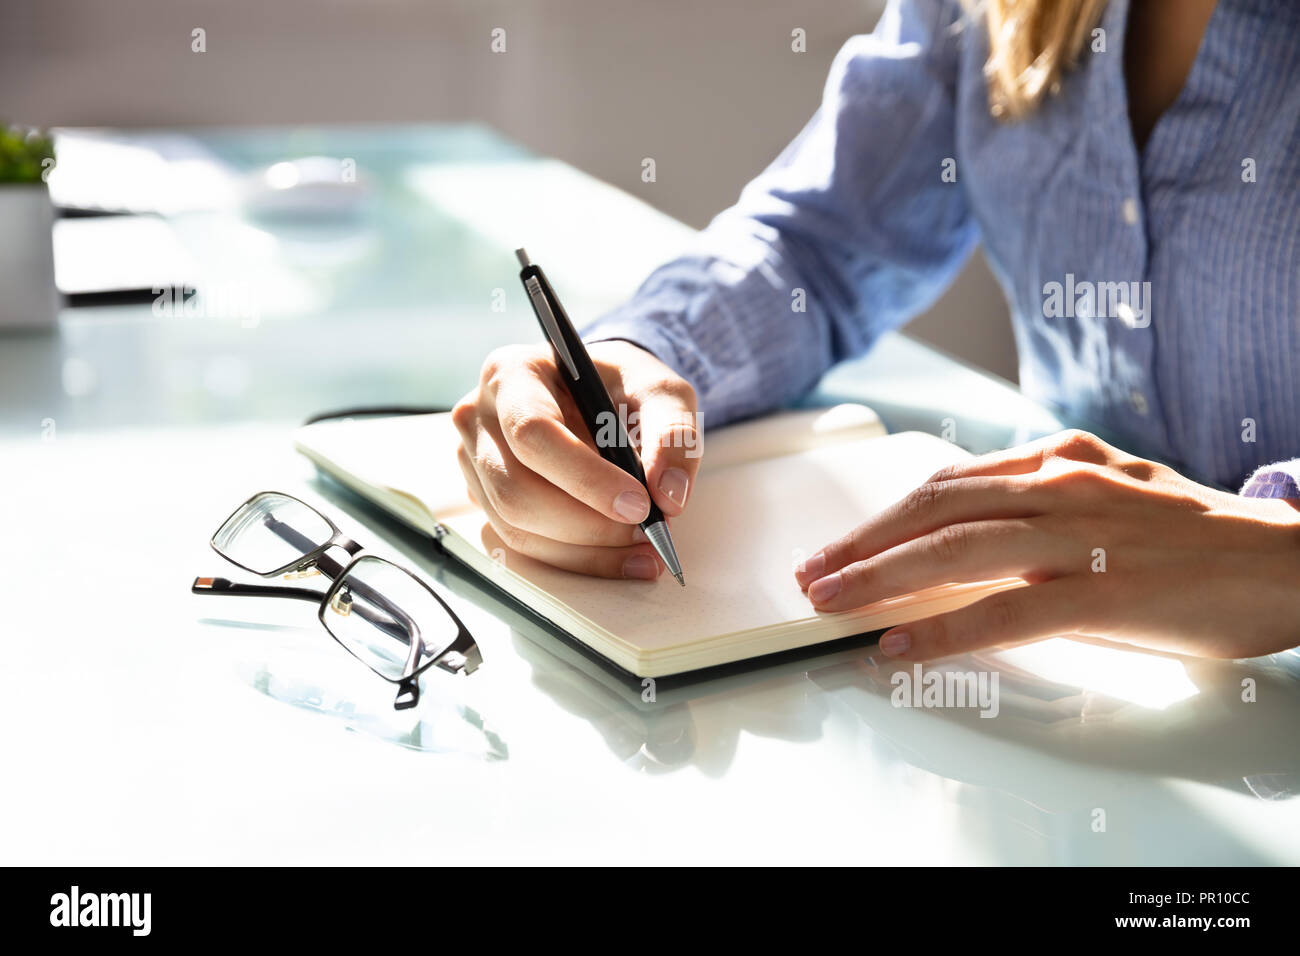 Close-up Of A Businesswoman's Hand Writing Notes In Notebook With Eyeglasses On Desk - Stock Image